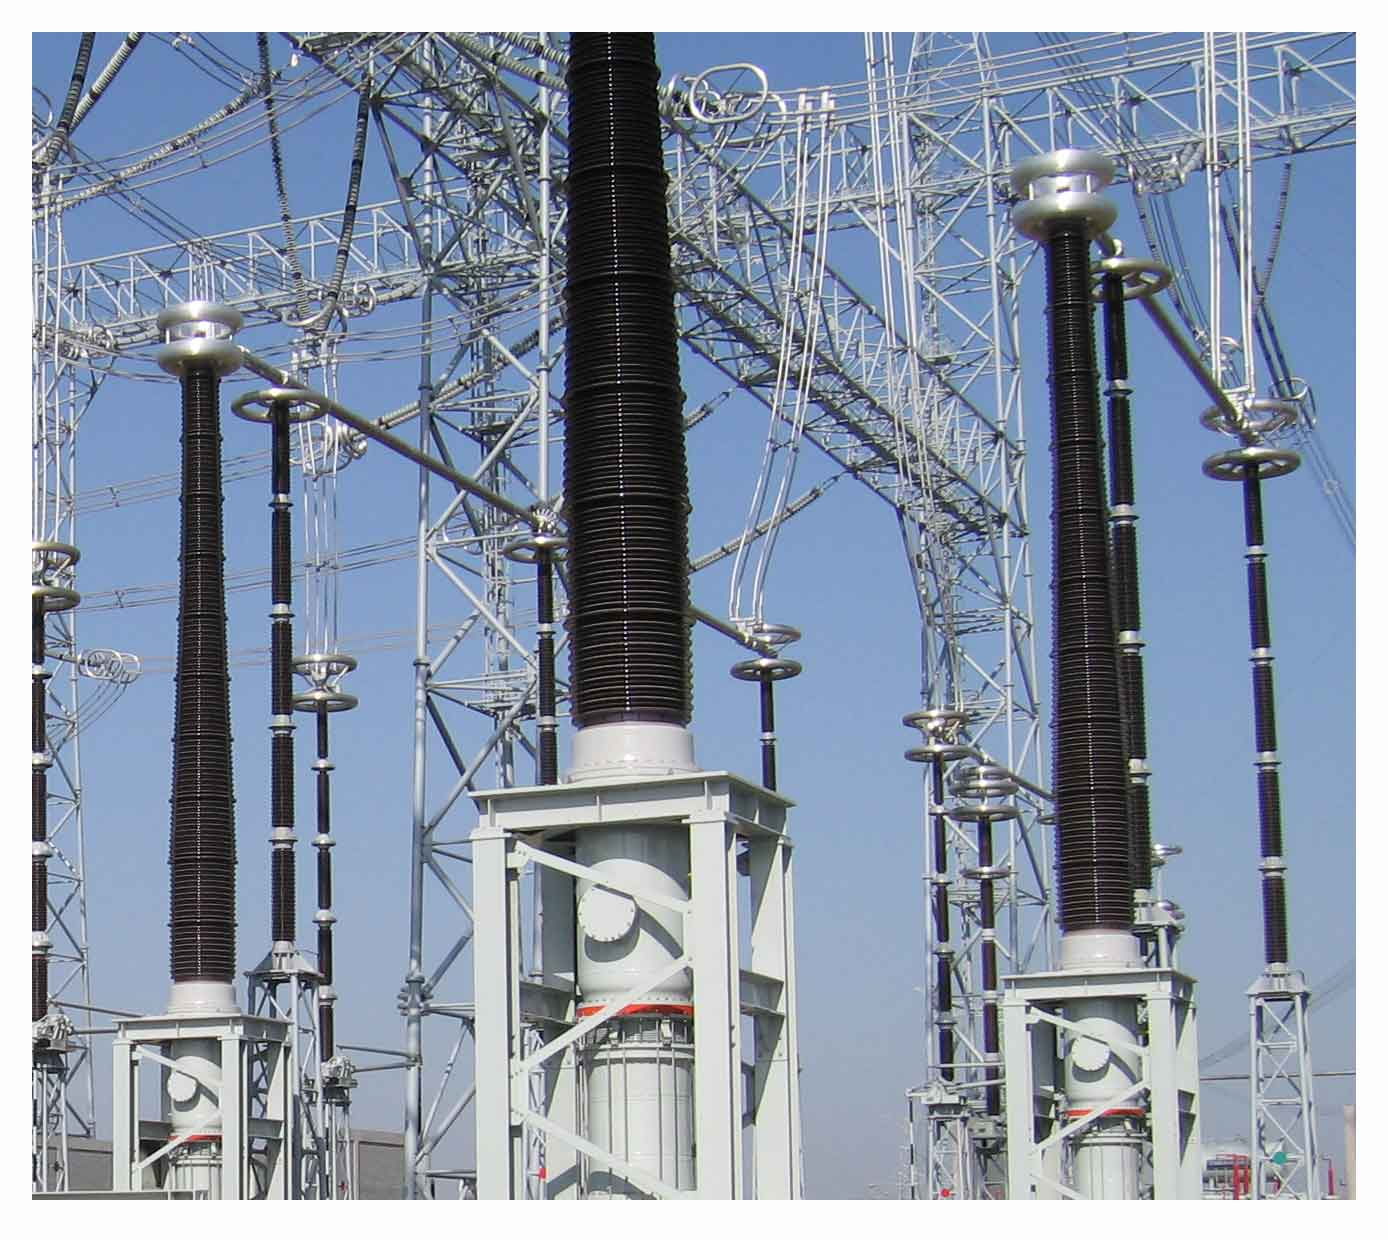 The substation receives voltage at 400kV, 220kV, 132kV or 66kV with the  help of large 3phase step-down transformers.